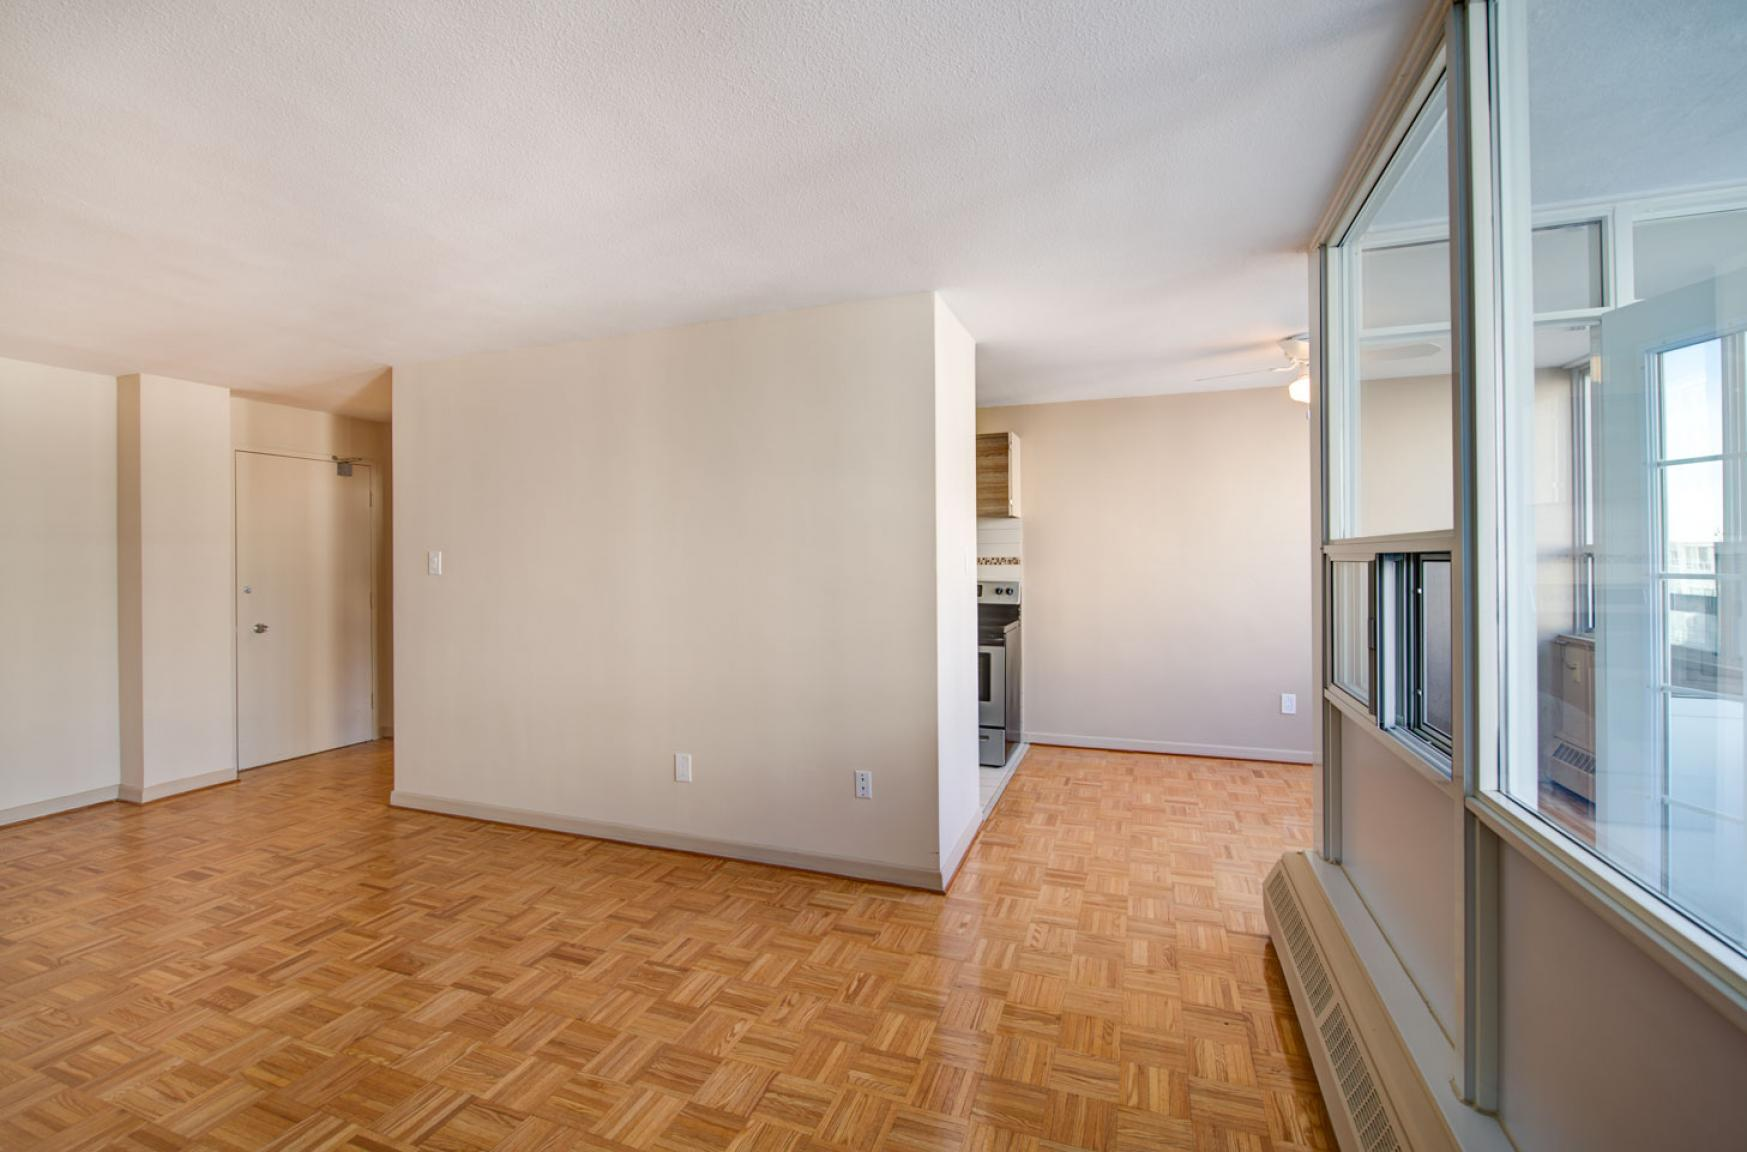 1 bedroom Apartments for rent in Toronto at Dunfield Tower - Photo 09 - RentersPages – L138879